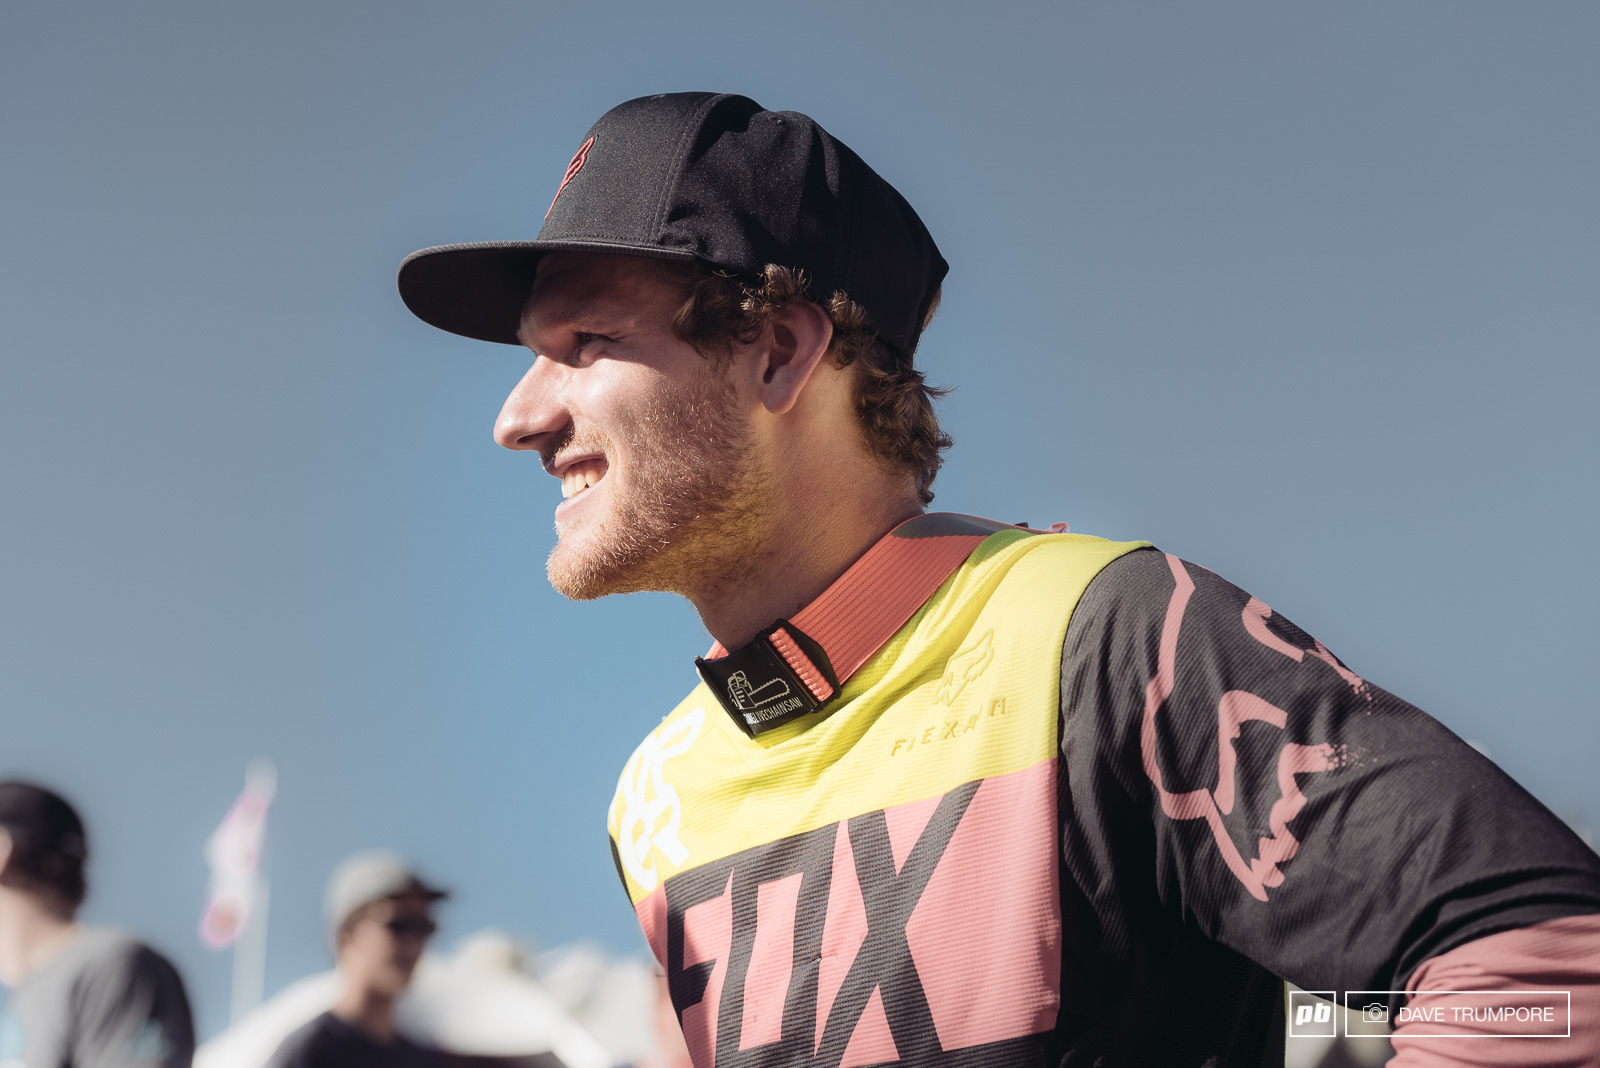 What a day for Bas Van Steenbergen who took a career best finish at Crankworx by winning today s Air DH.